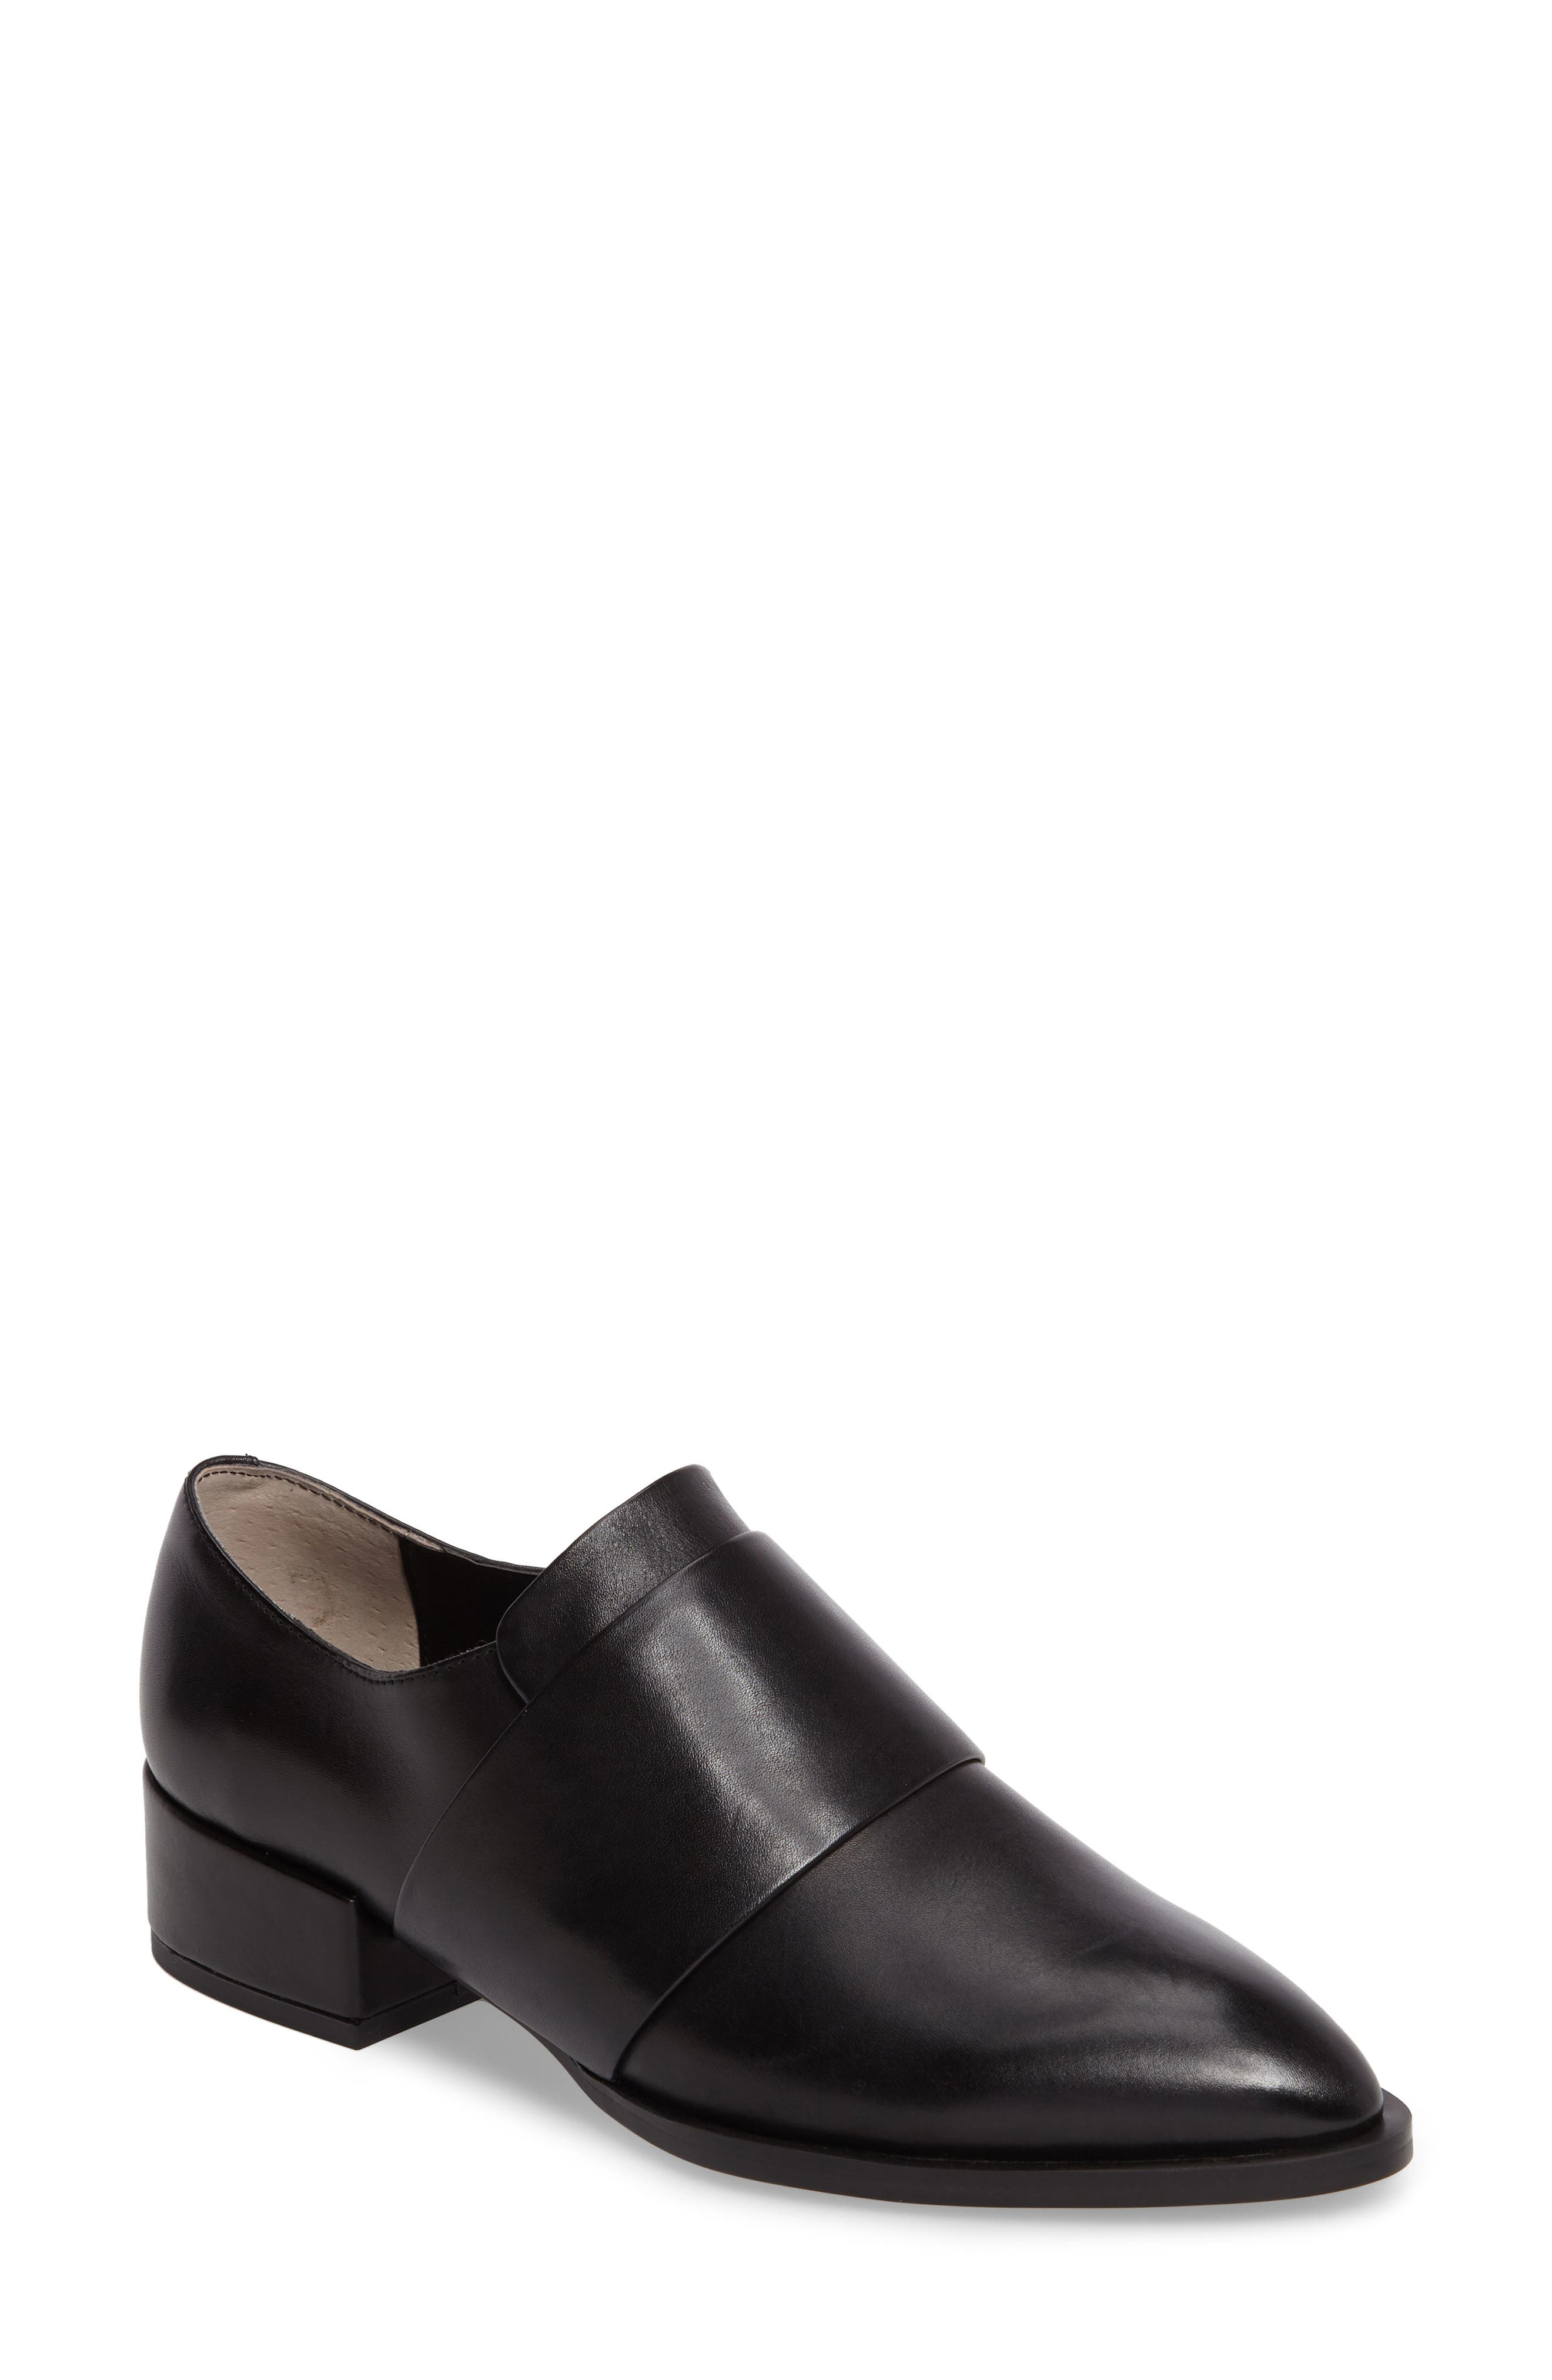 Dilla Loafer,                             Main thumbnail 1, color,                             Black Calais Leather